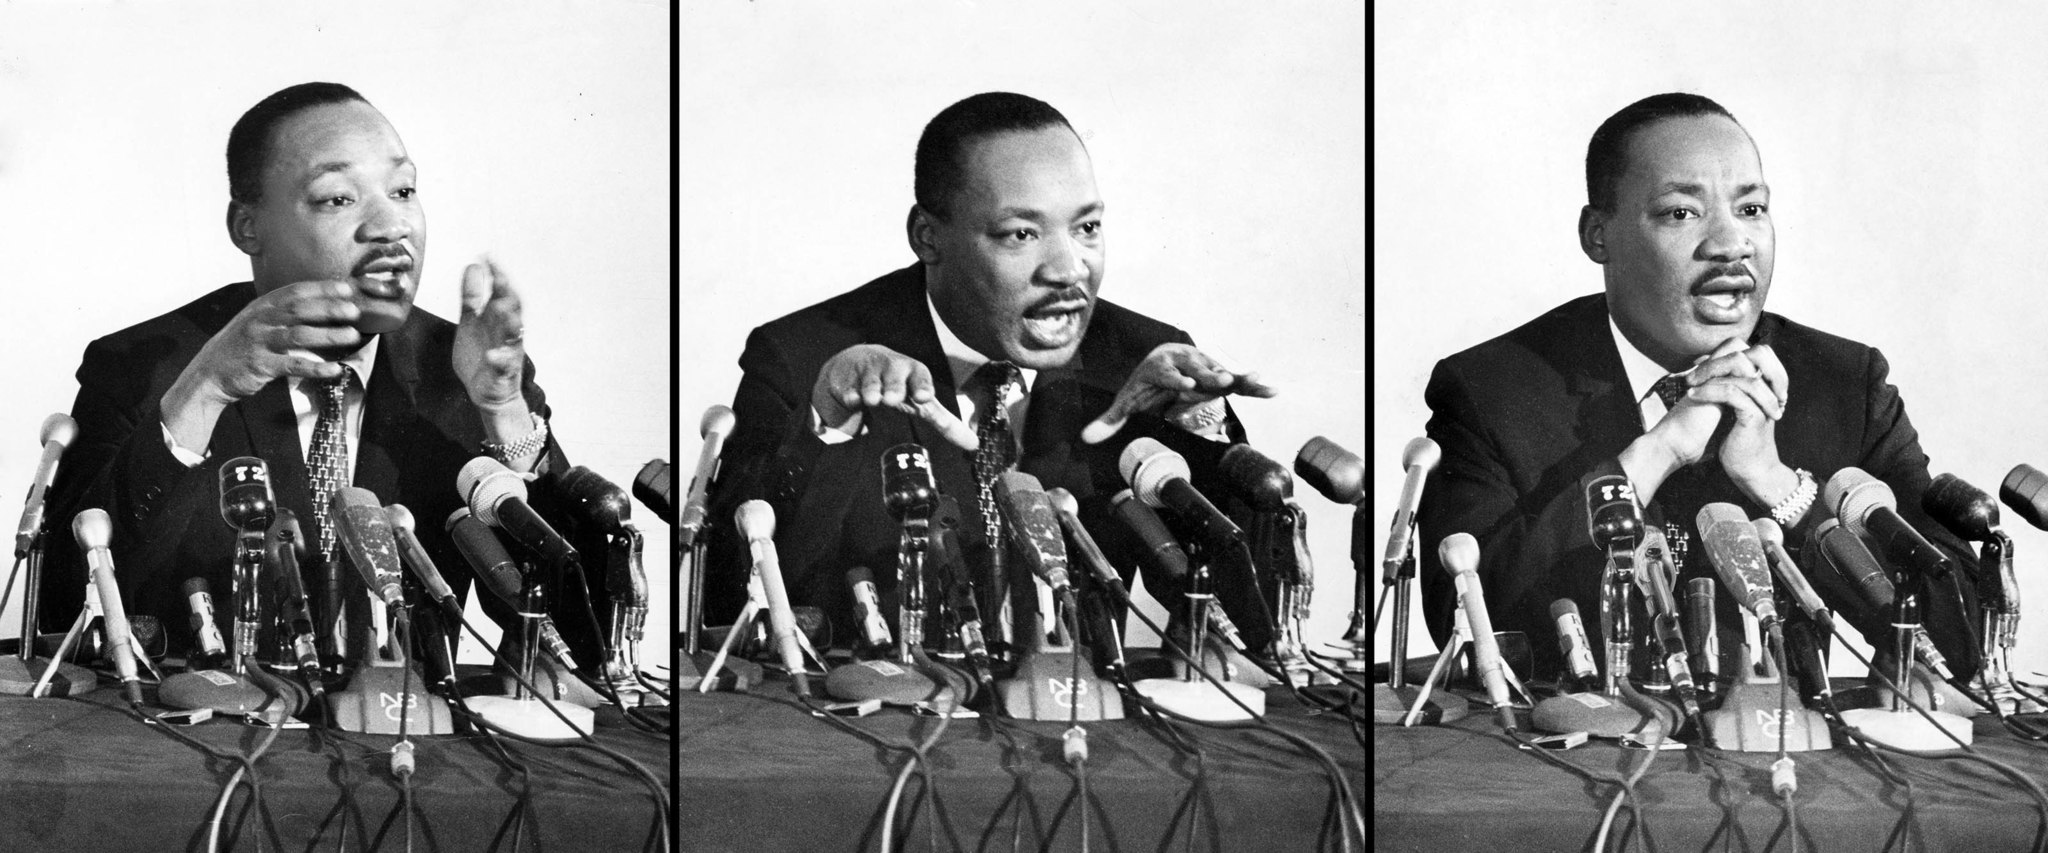 Apr. 12, 1967: Martin Luther King during press conference at the Biltmore Hotel in Los Angeles.